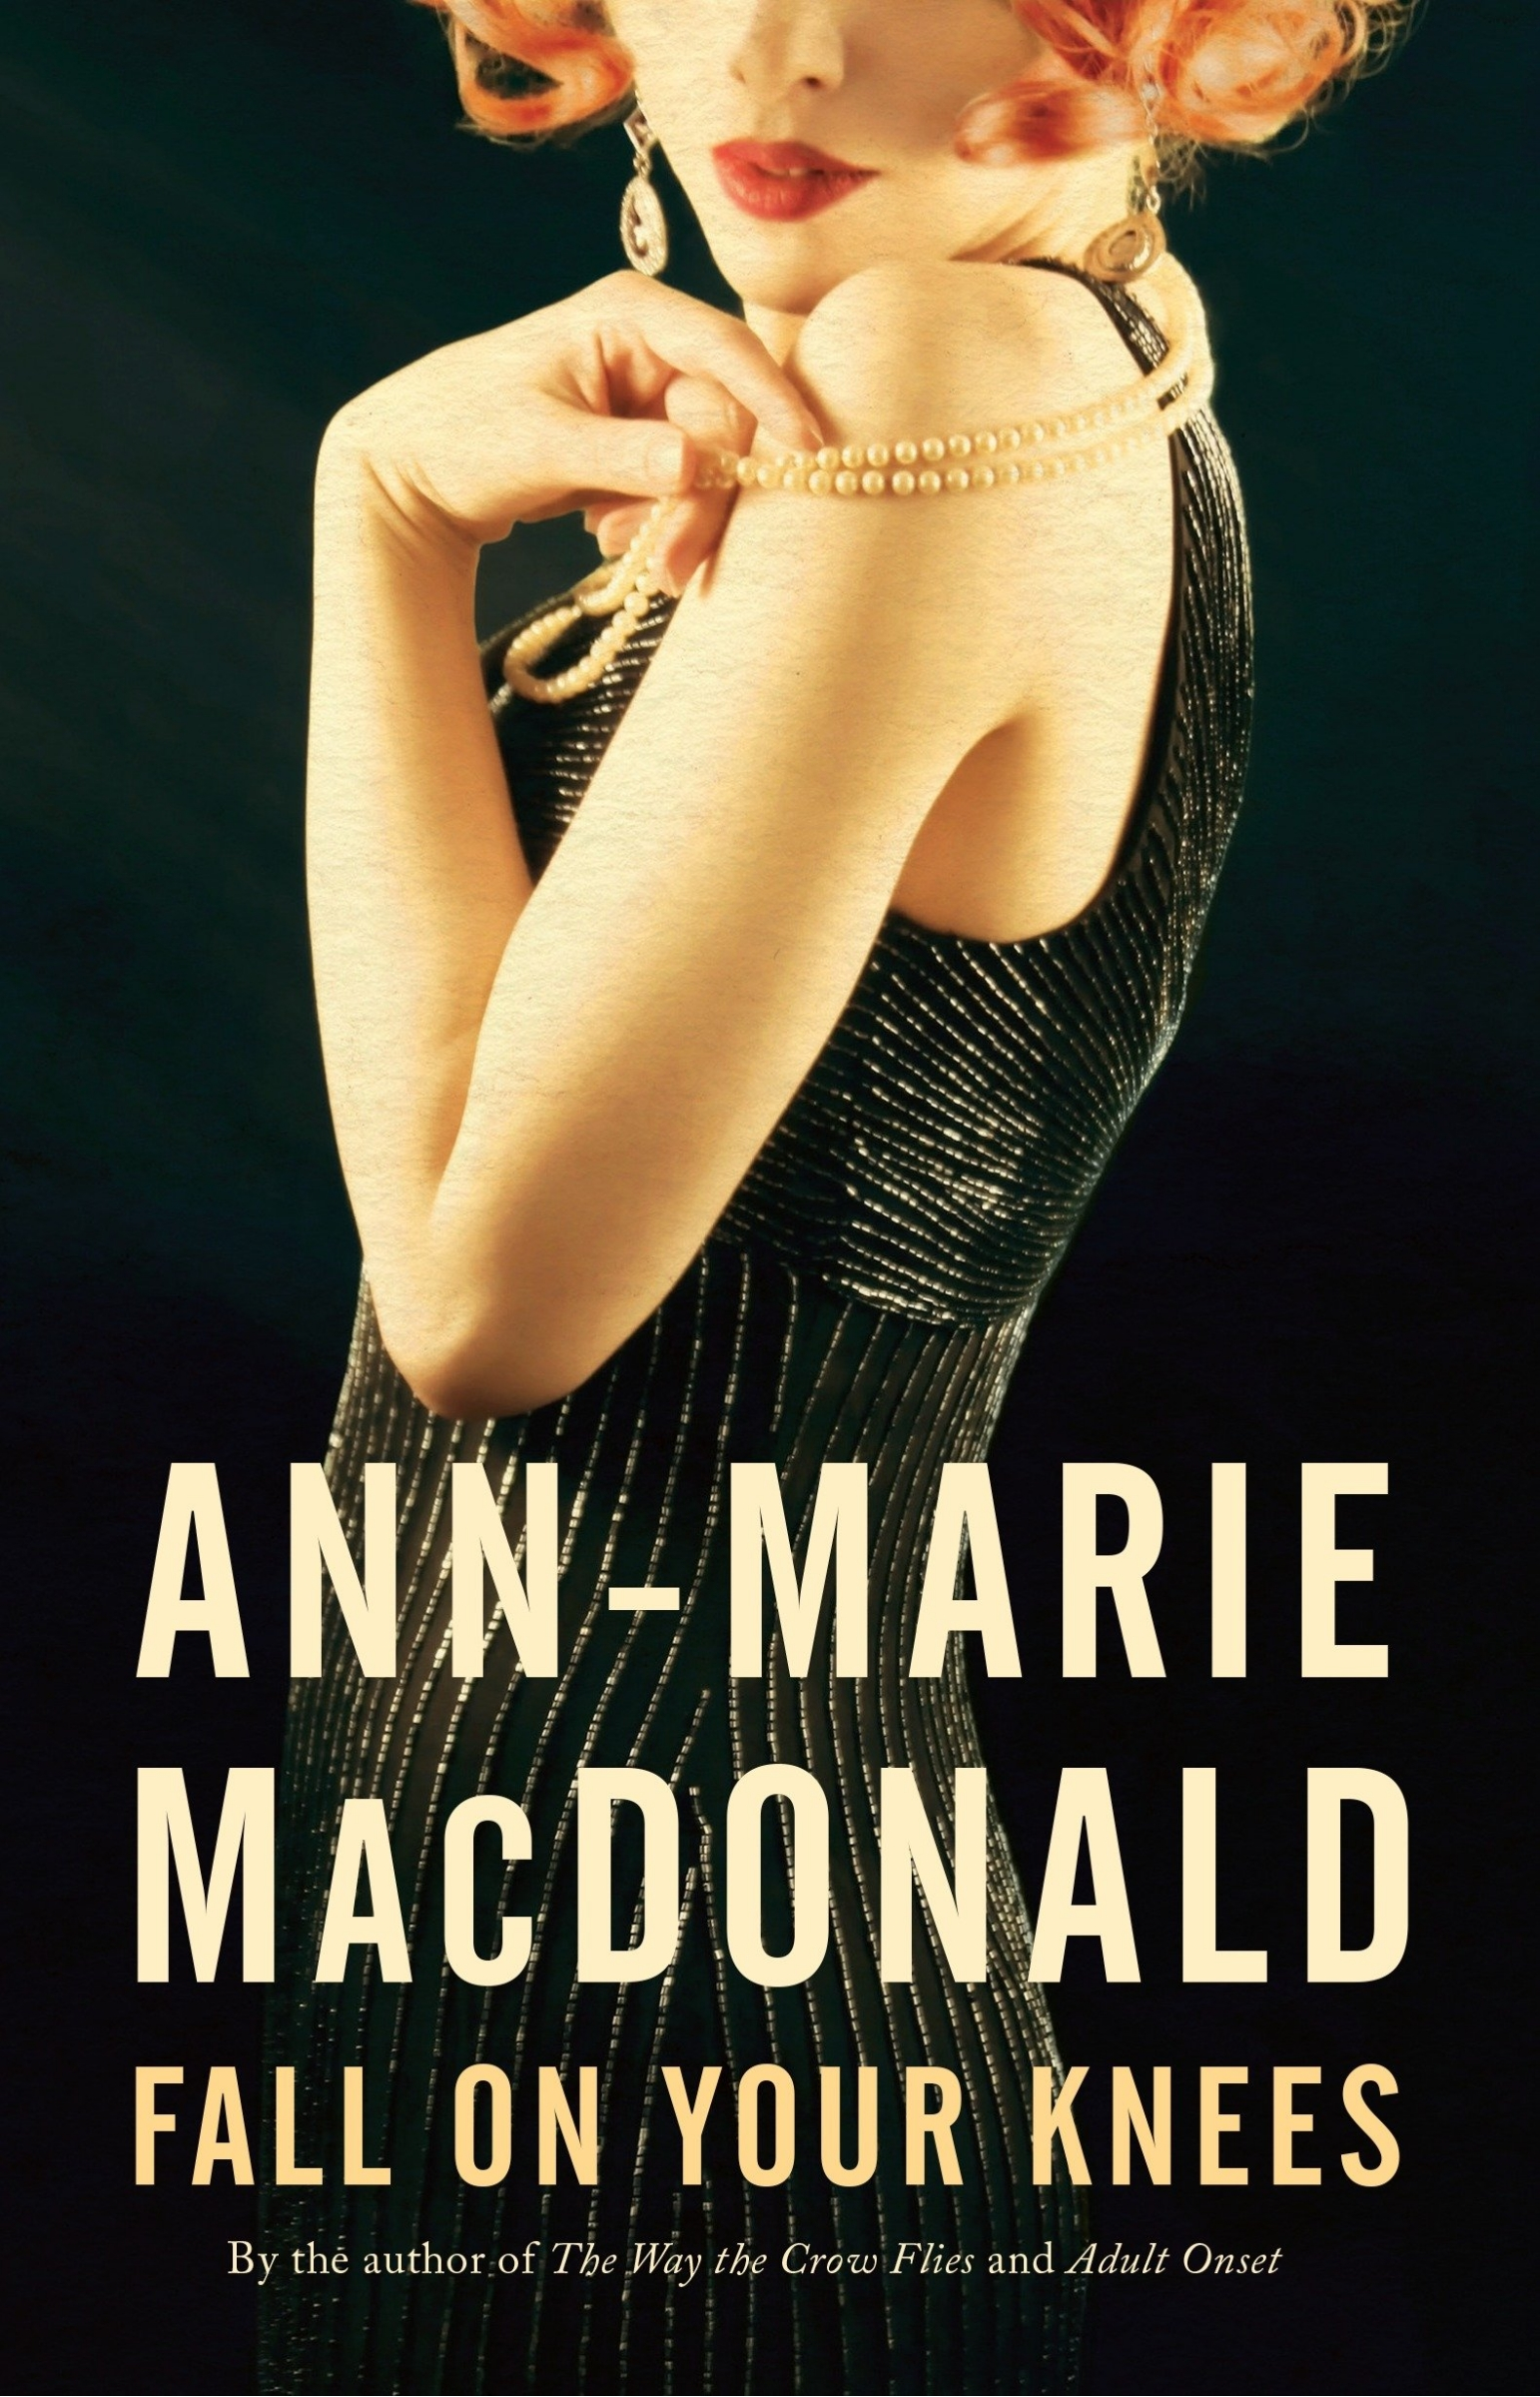 Book Fall On Your Knees by Ann-marie Macdonald